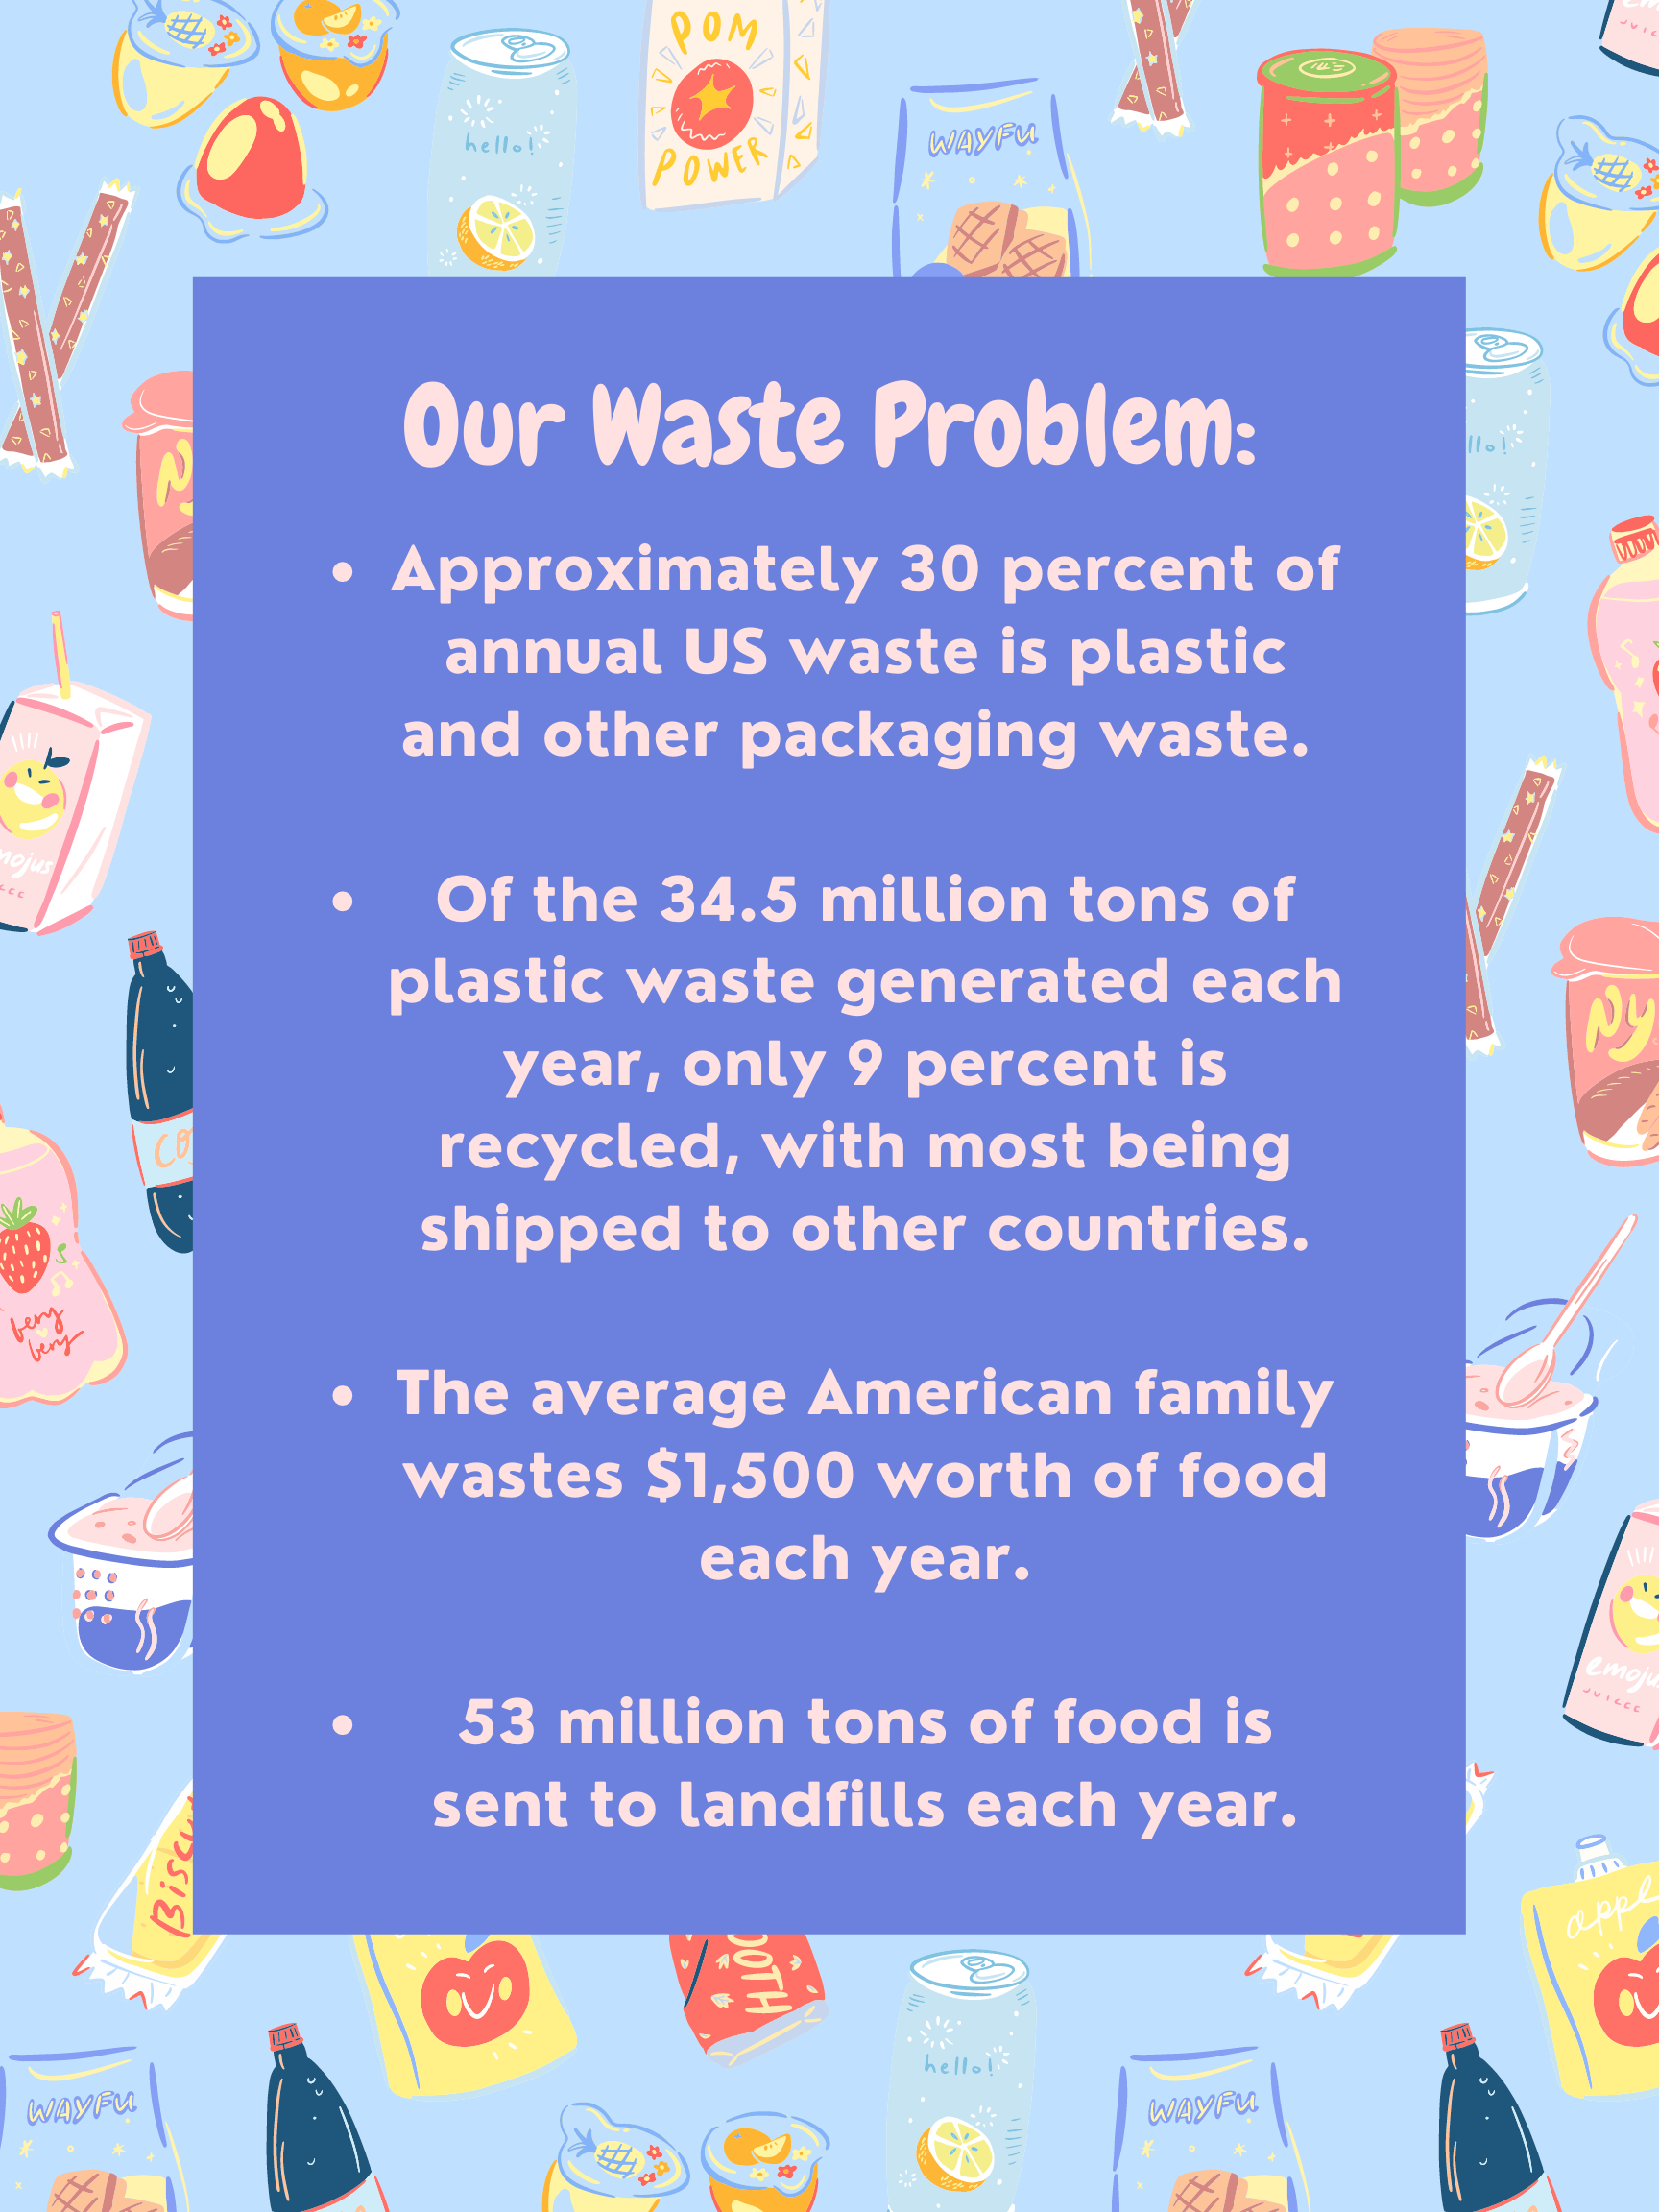 Approximately 30 percent of annual US waste is plastic and other packaging waste.  Of the 34.5 million tons of plastic waste generated each year, only 9 percent is recycled, with most being shipped to other countries. The average American family wastes $1,500 worth of food each year. 53 million tons of food is sent to landfills each year.